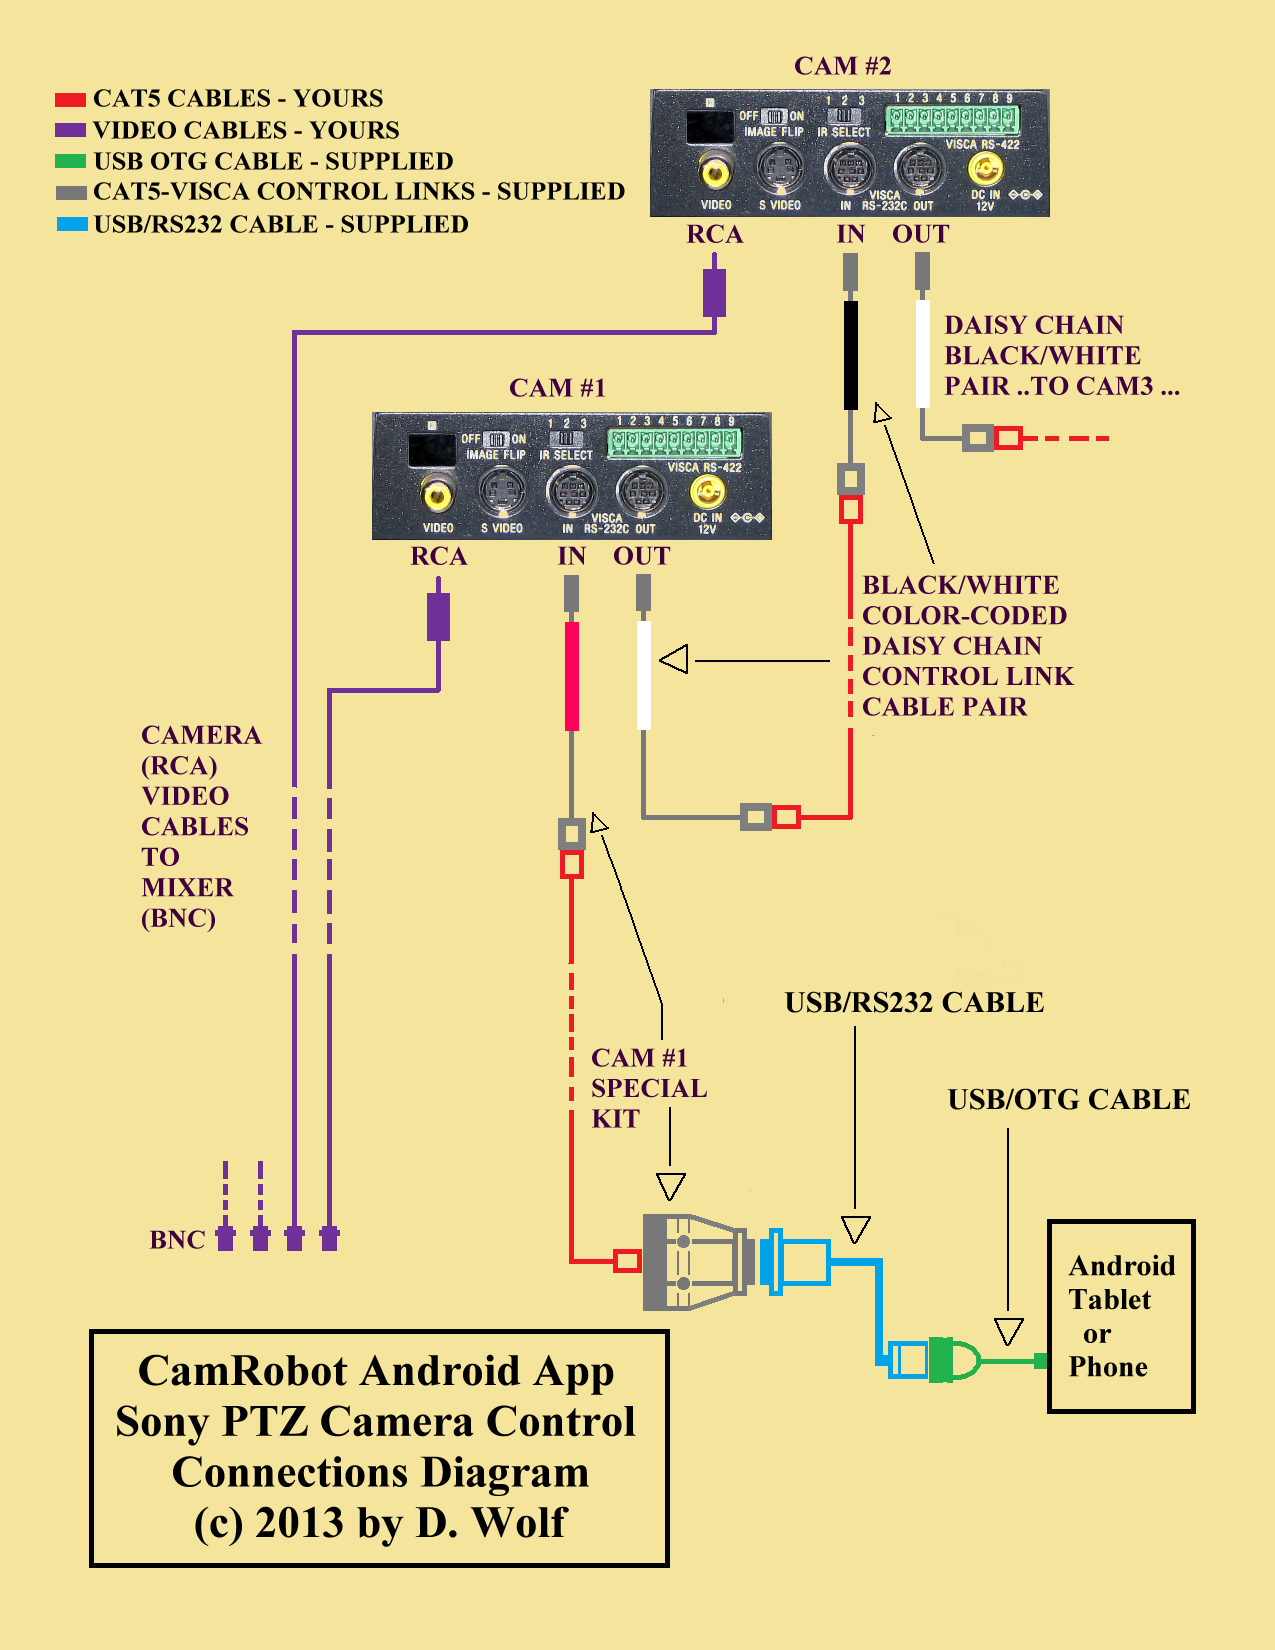 Db25 To Usb Cable Schematic | Manual E-Books - Serial Port To Usb Wiring Diagram